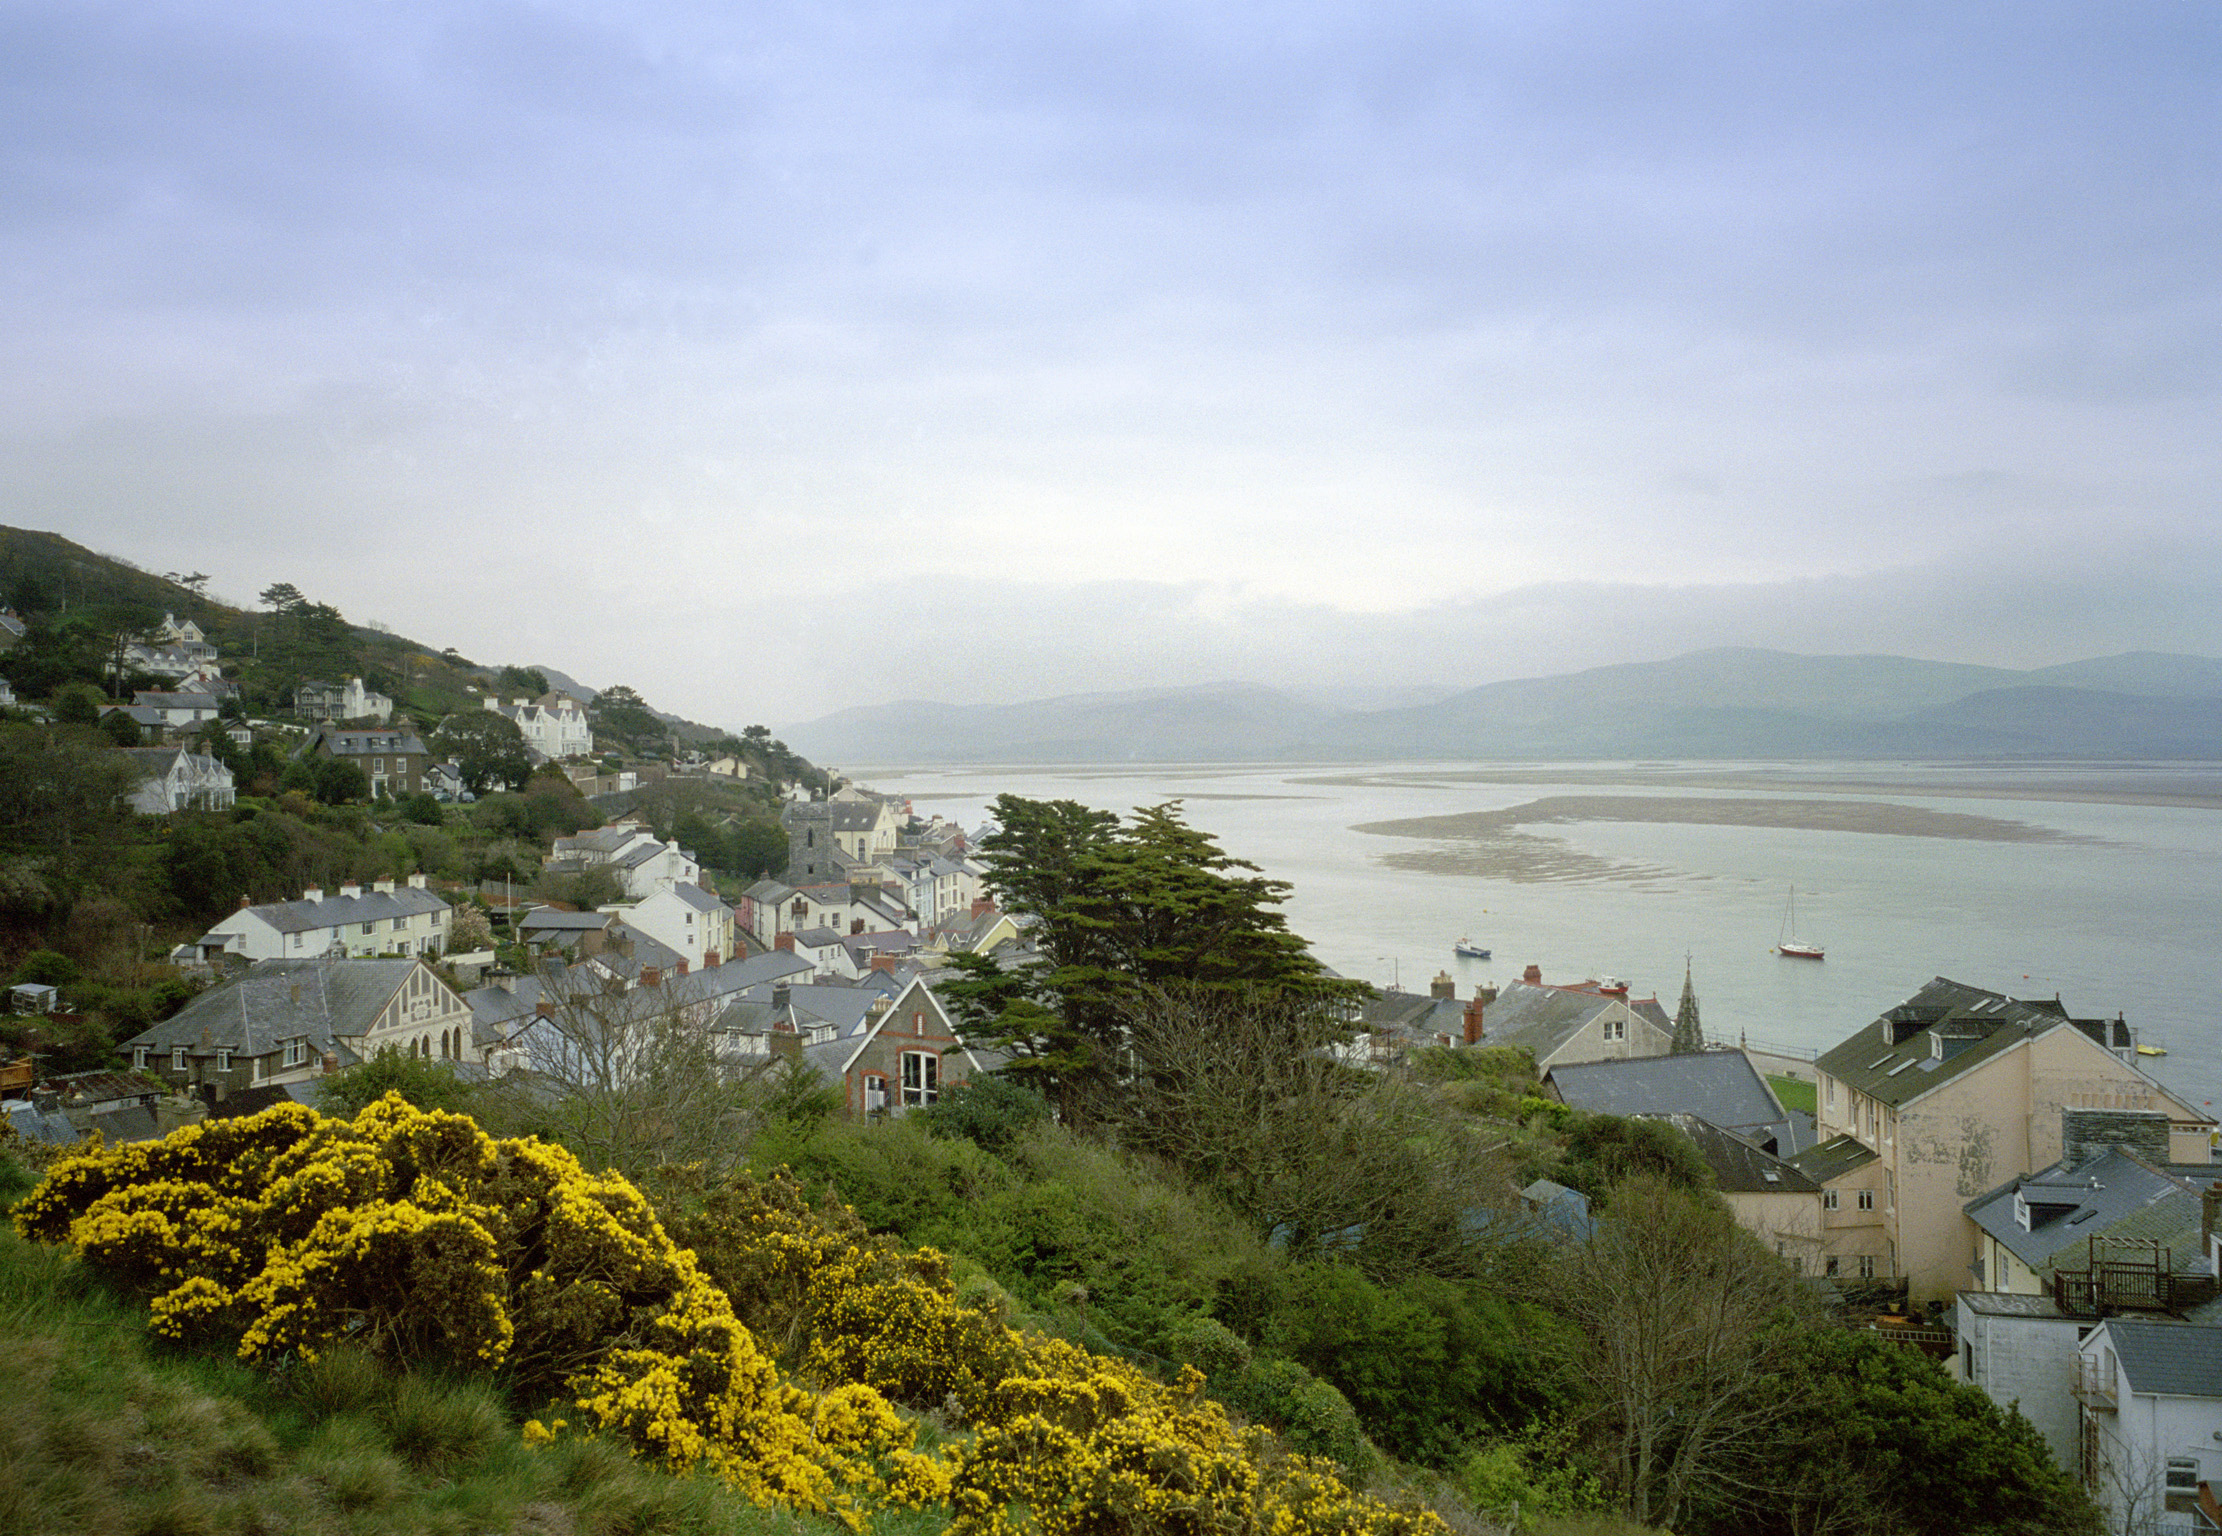 Hillside Overview of Coastal Aberdovey Village, Gwynedd, Wales